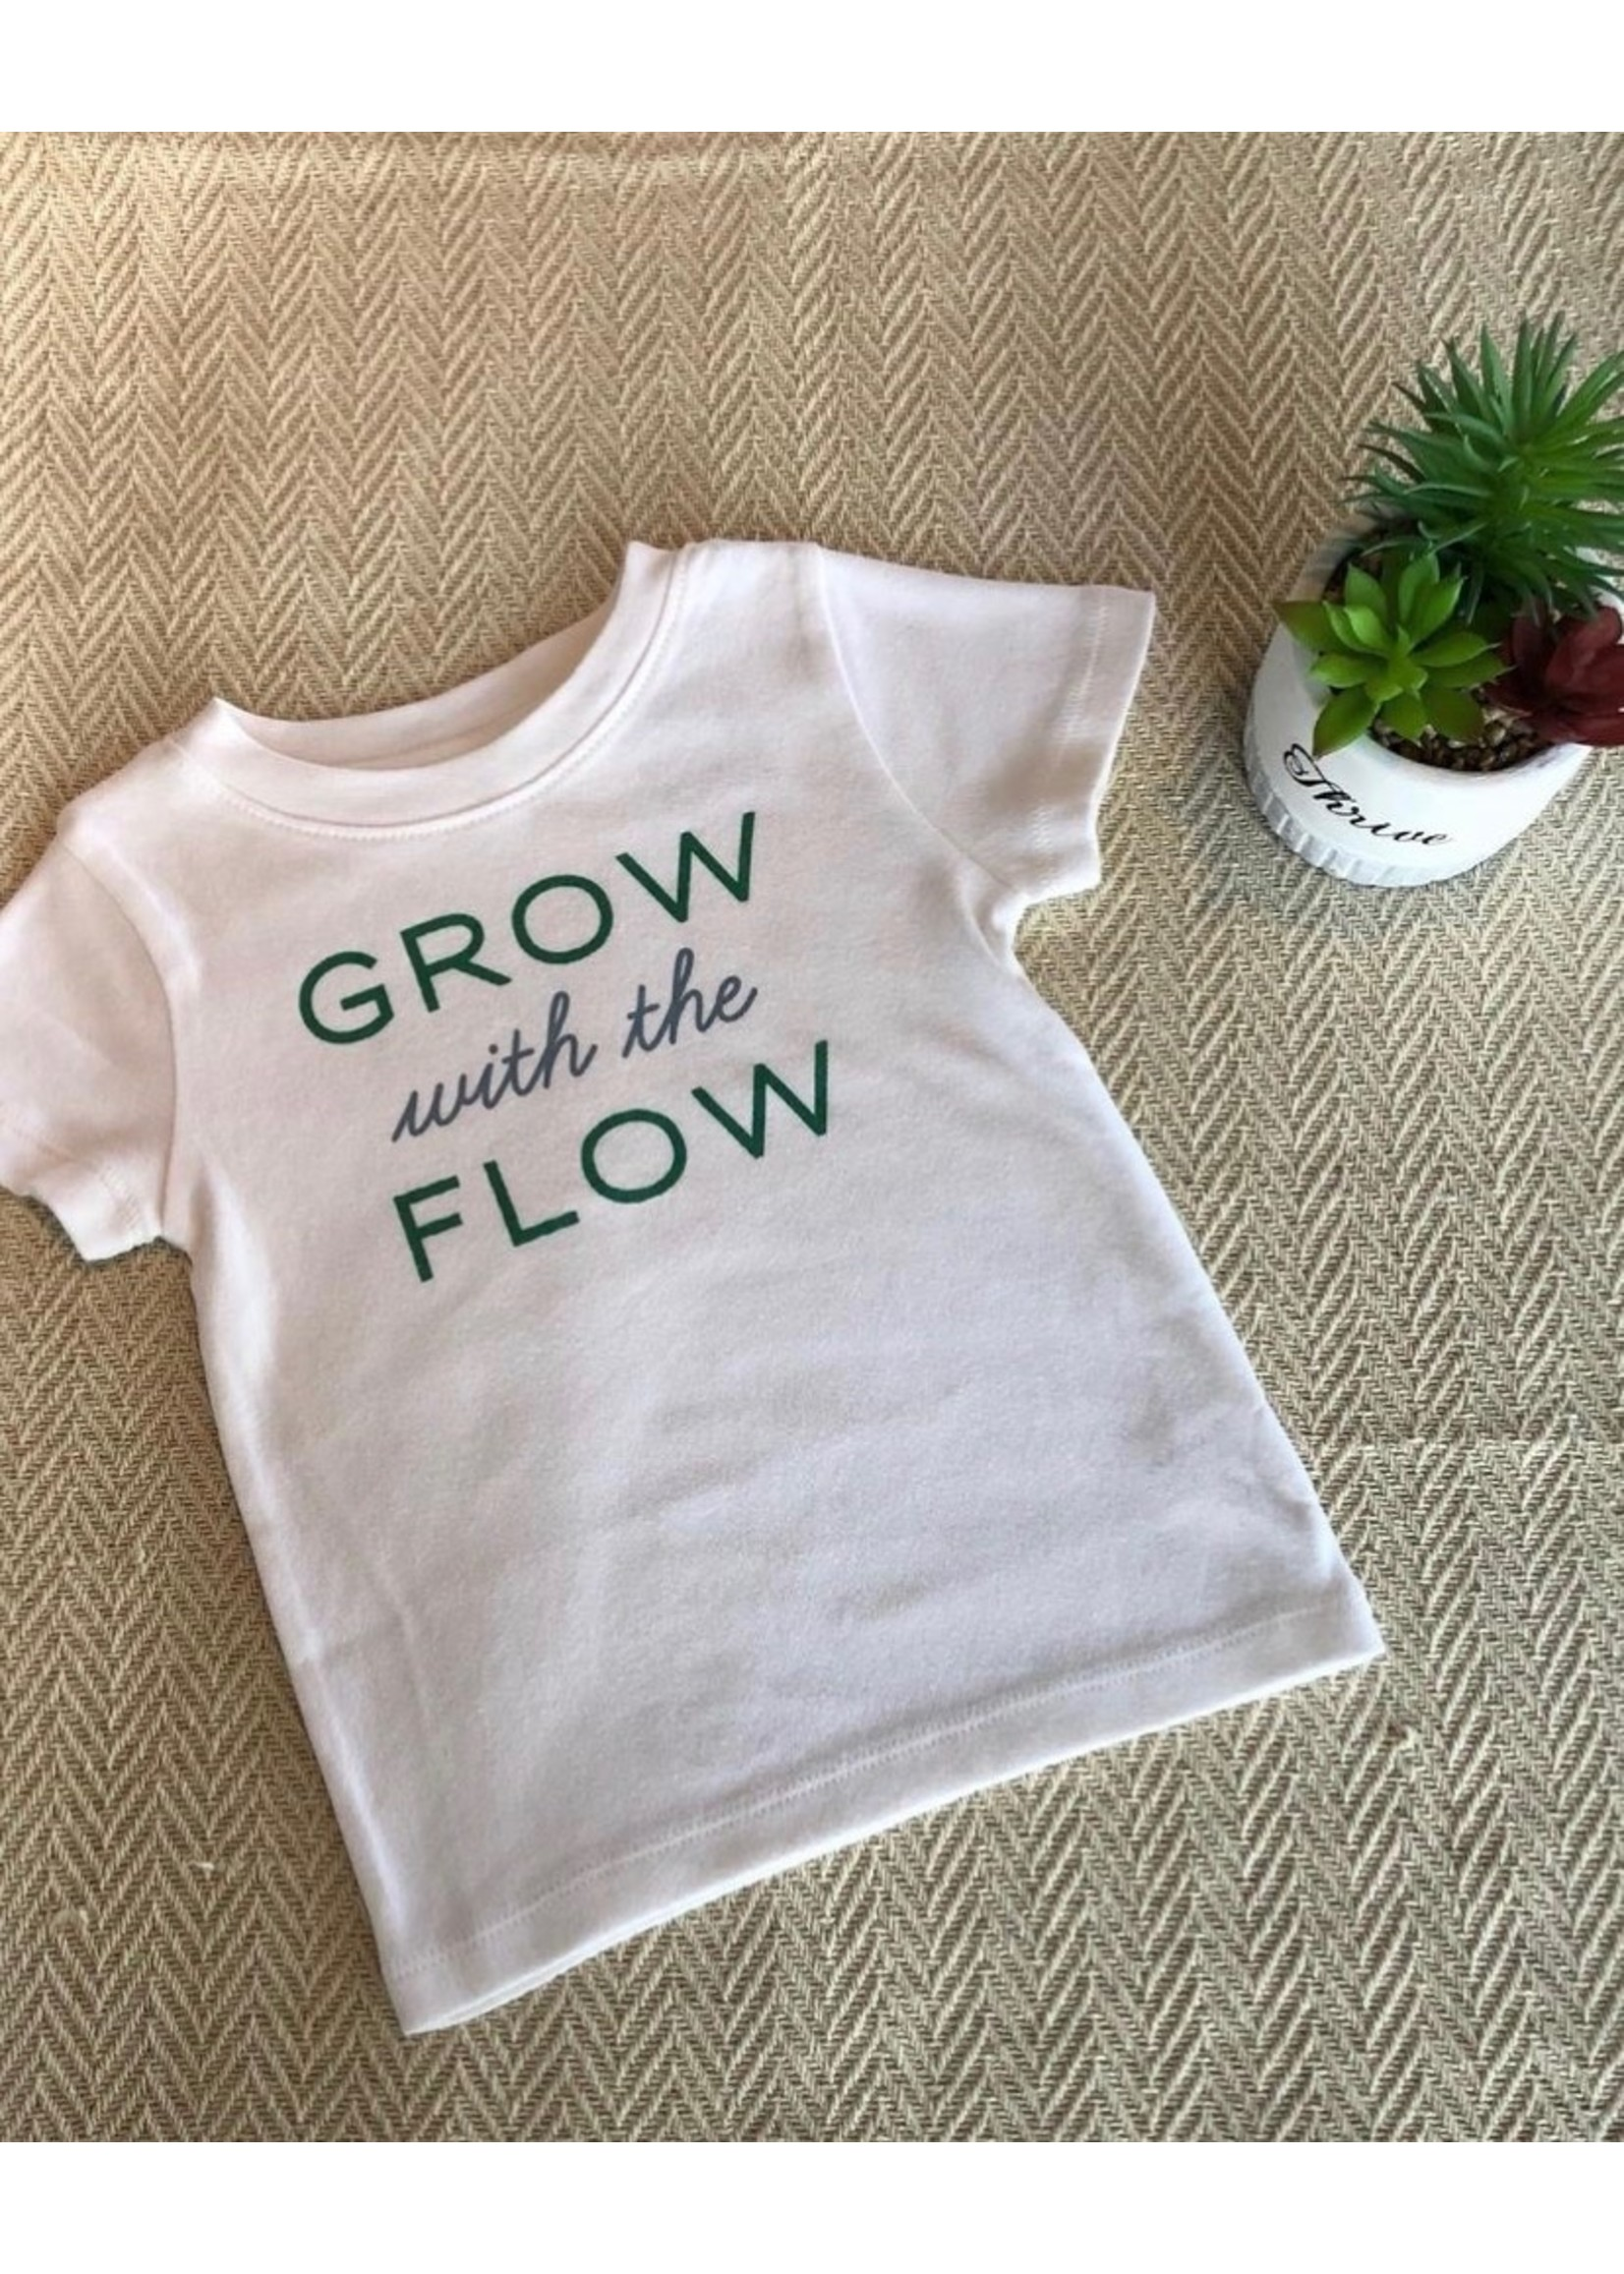 Cotton Kid's Tee with Words